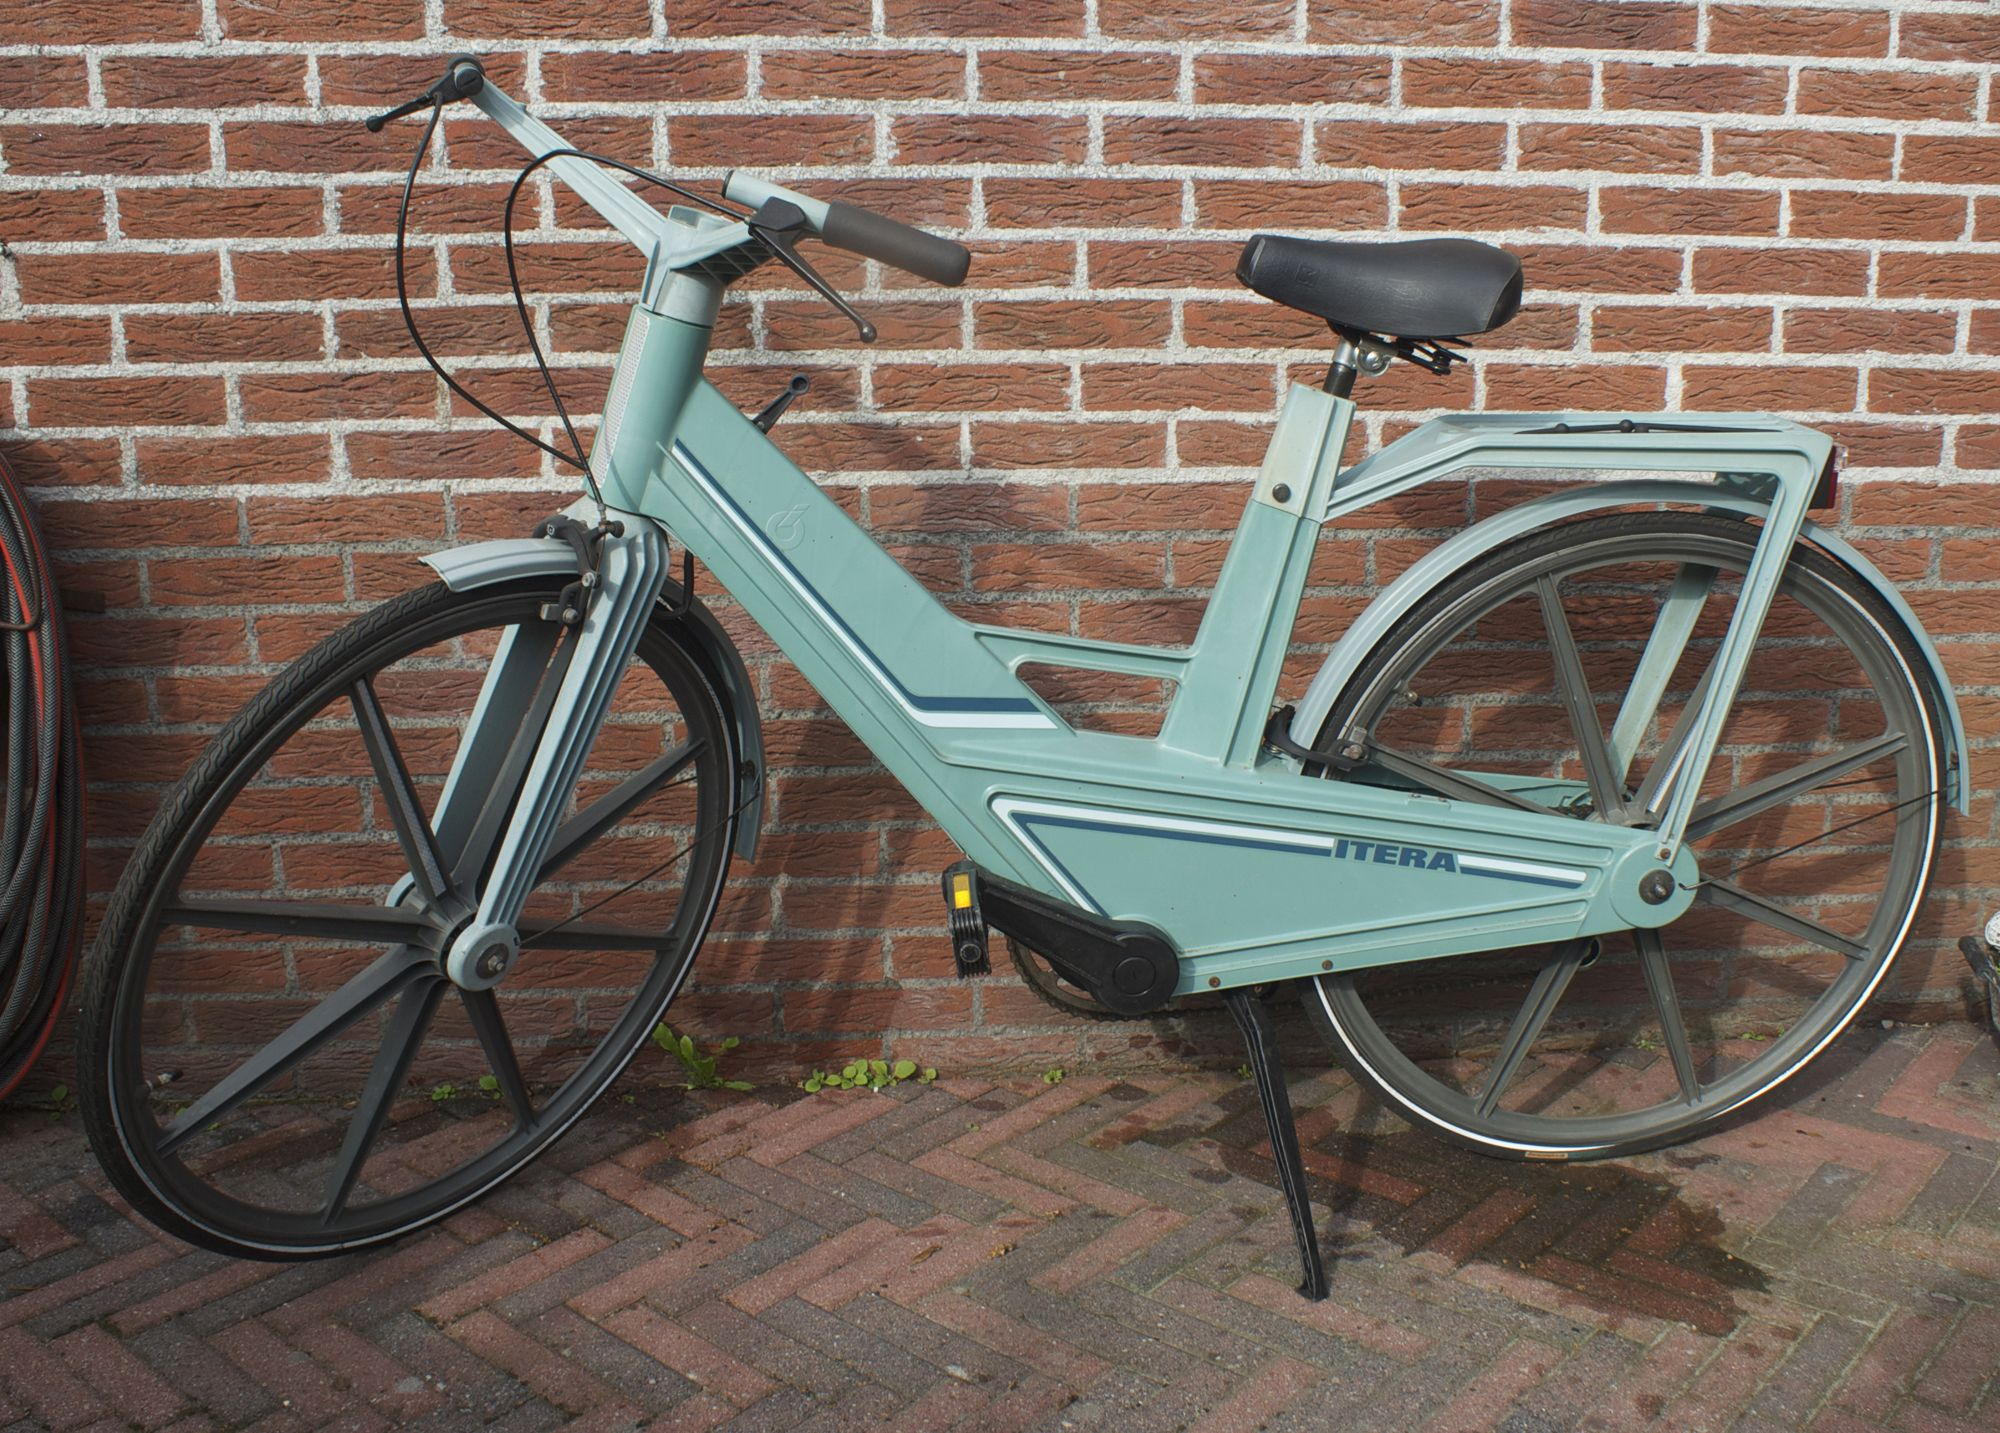 A Volvo design ITERA plastic Bicycle, produced between ...